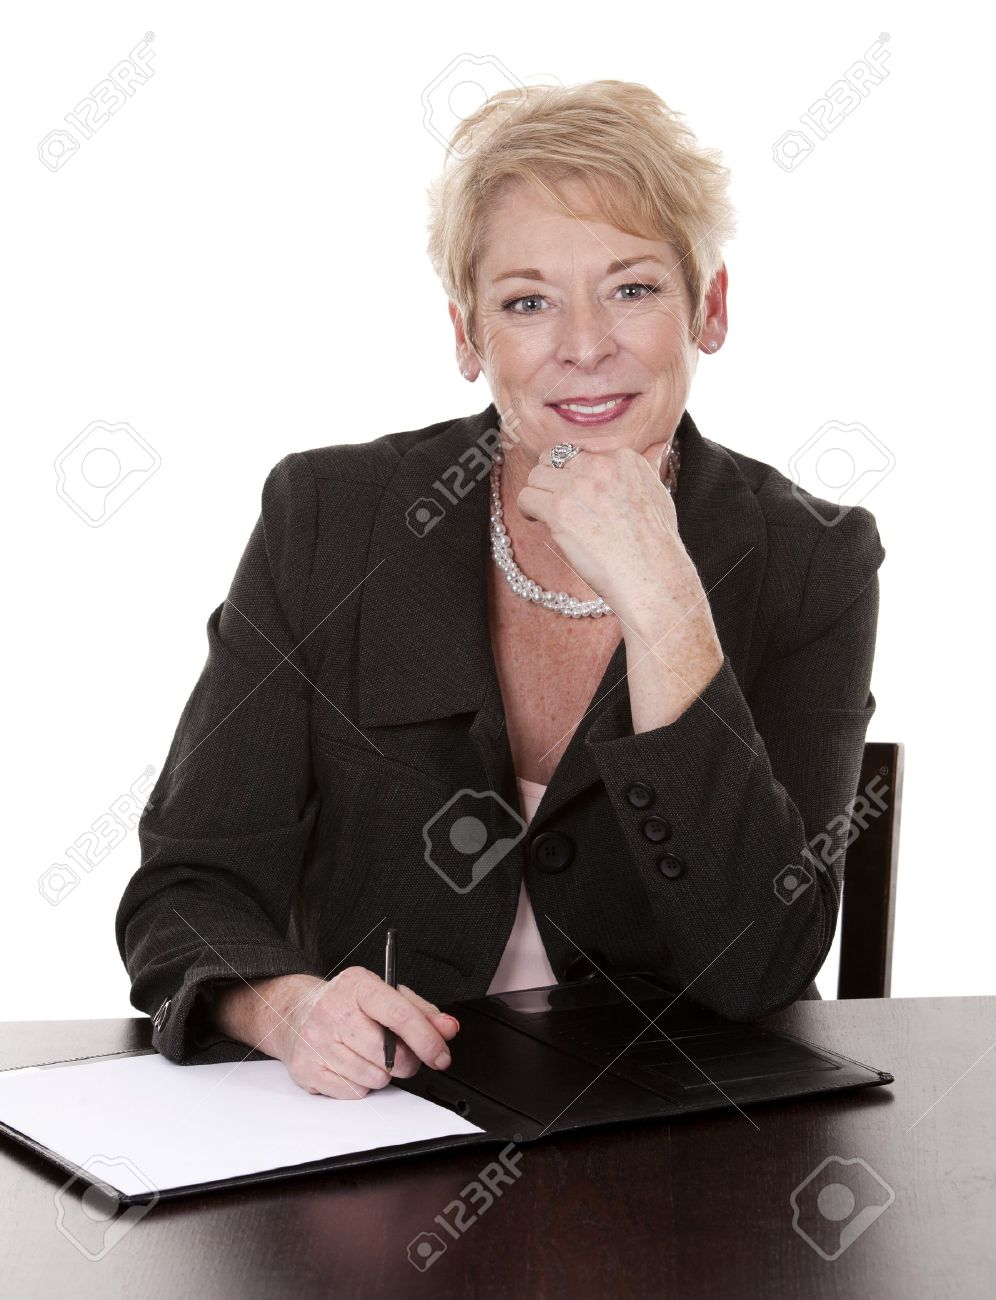 mature woman sitting behind desk and writing notes down stock photo